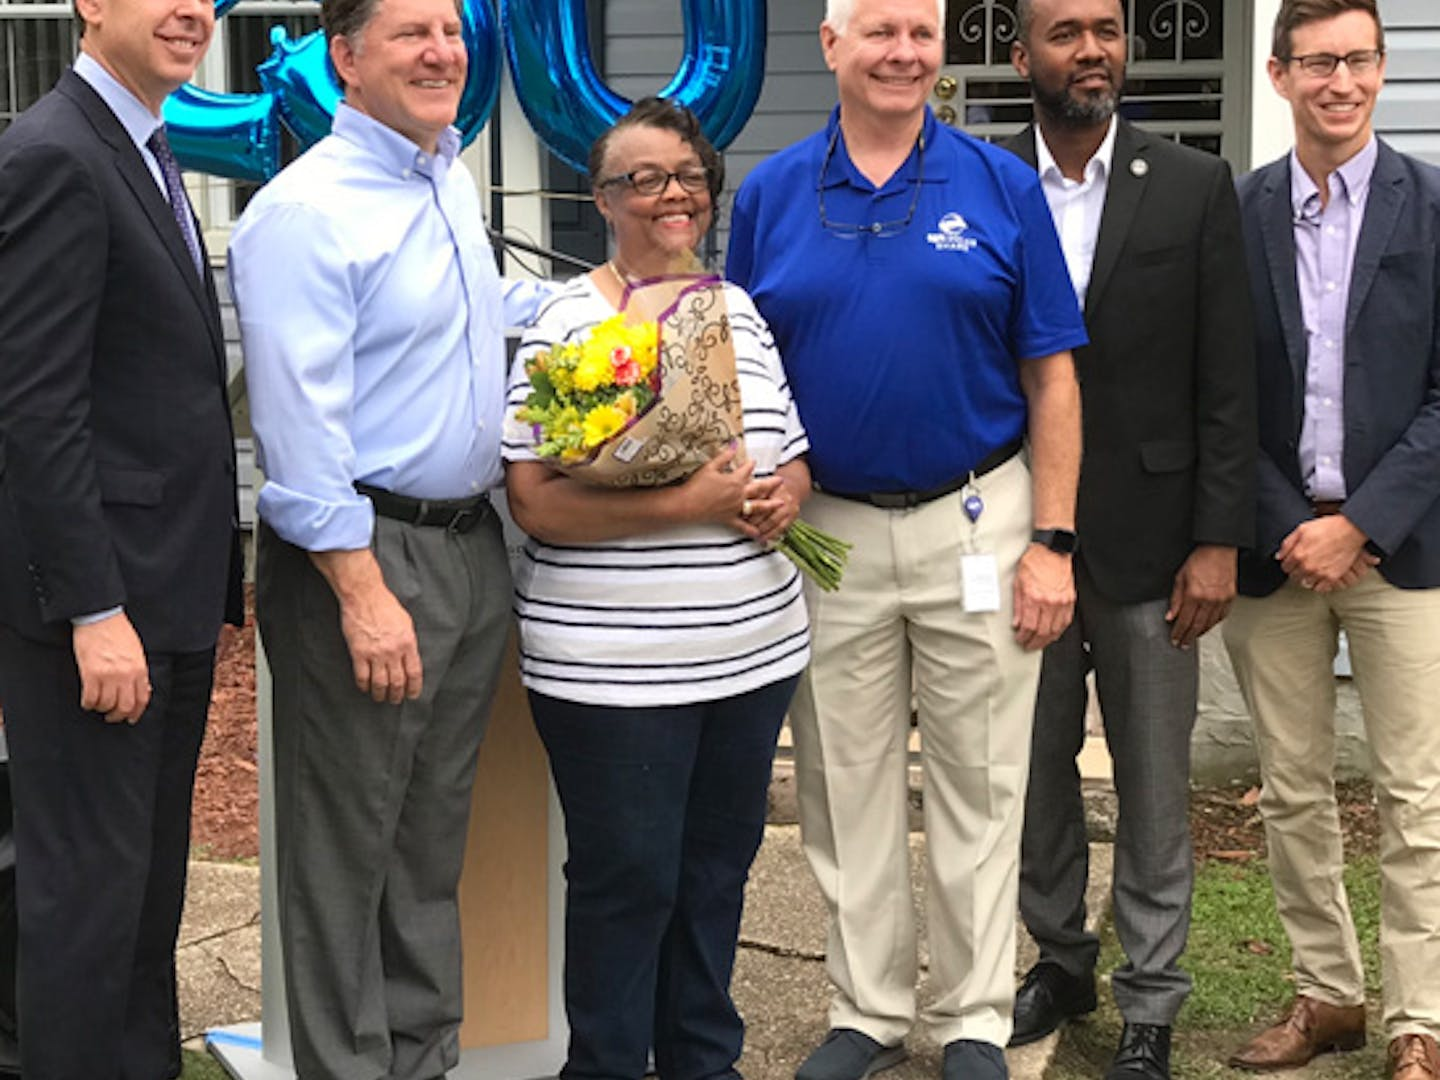 epb-completes-250th-home-energy-upgrade-receives-additional-support-to-continue-energy-efficiency-renovations.jpeg